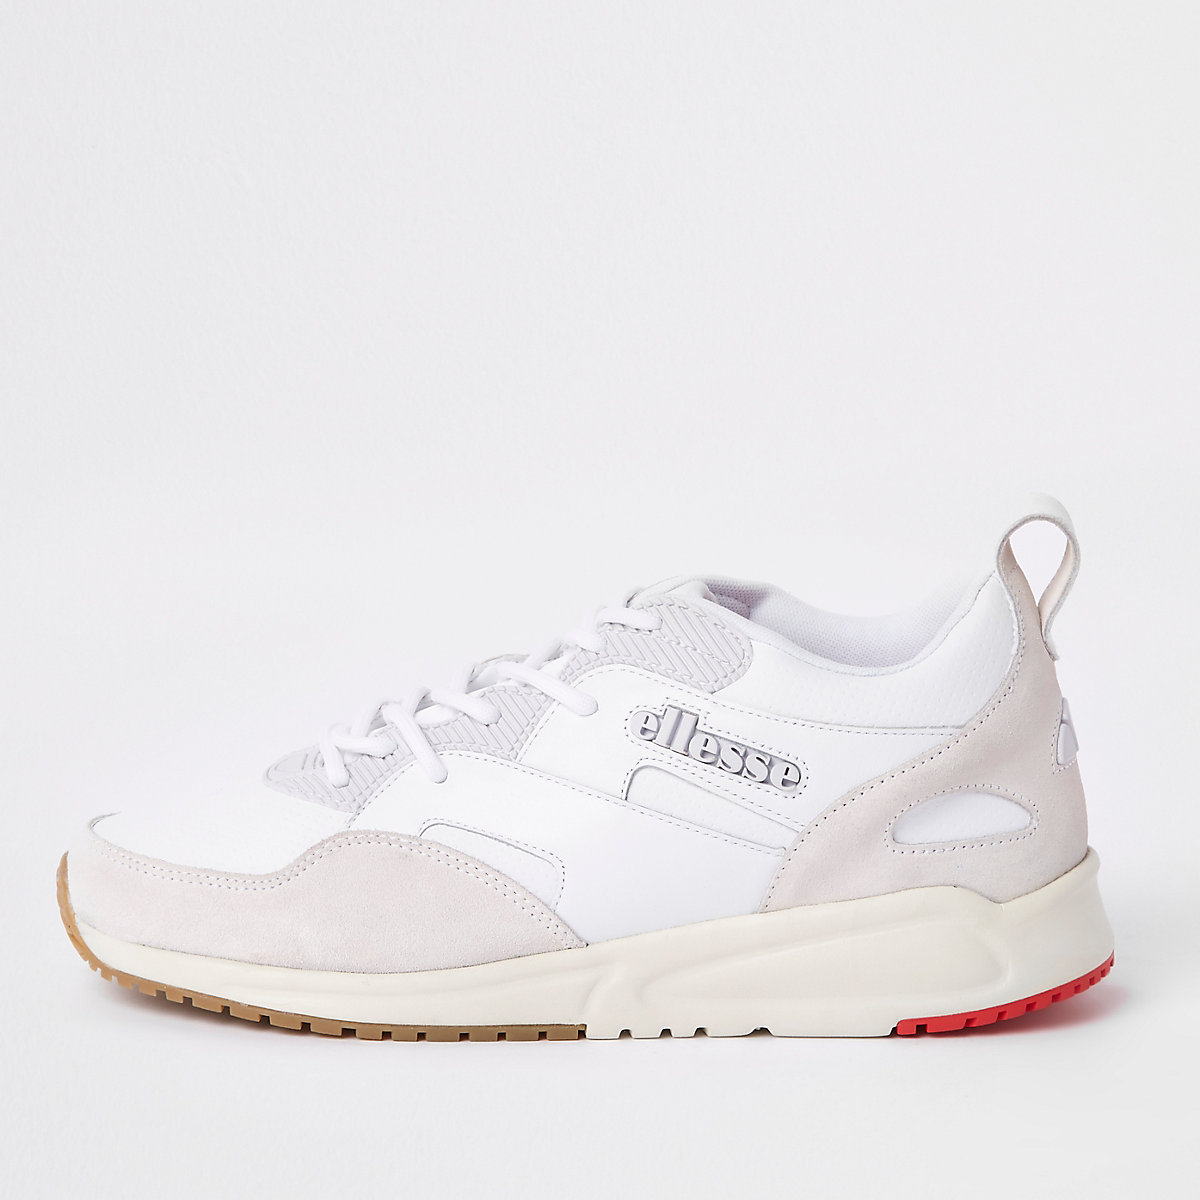 Ellesse white Potenza leather sneakers